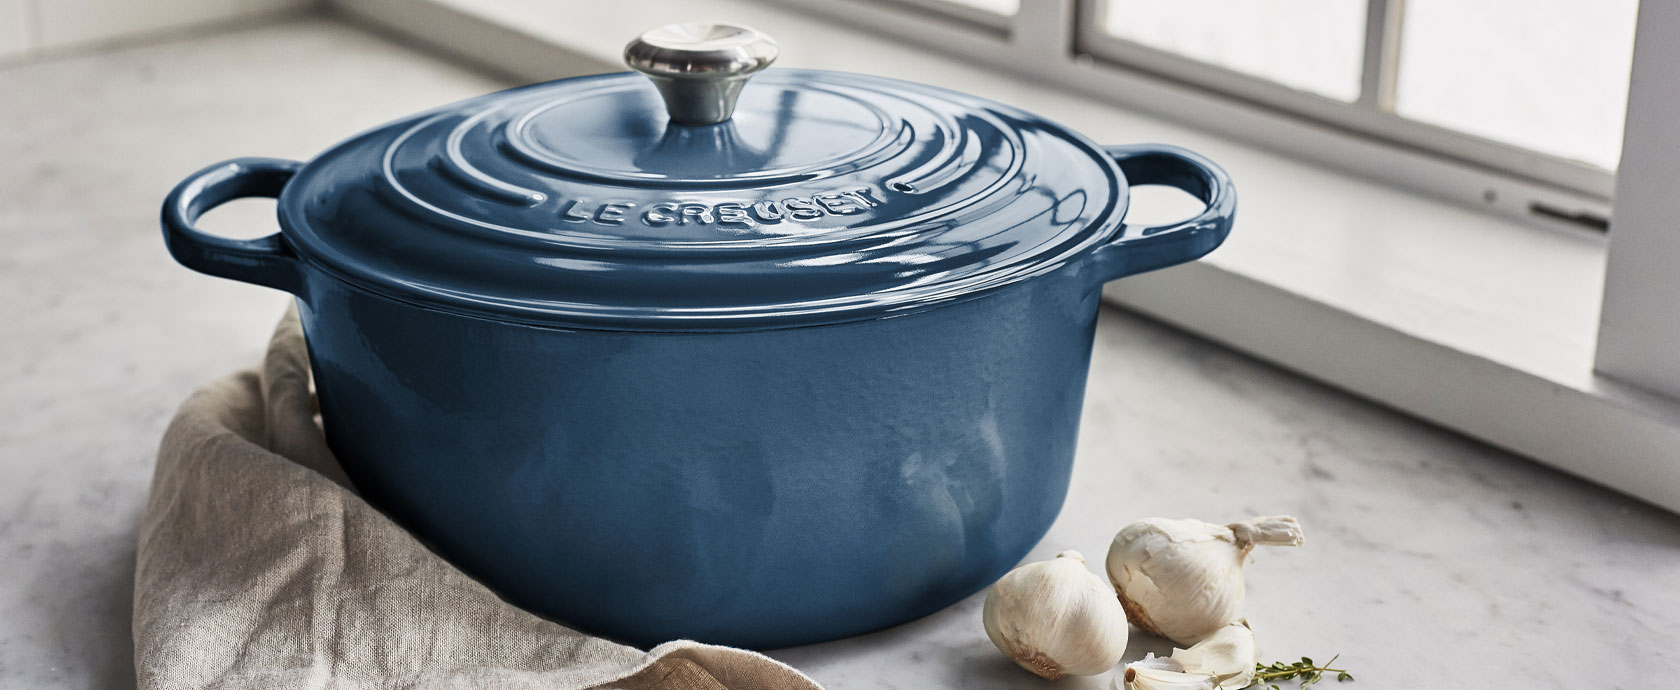 Le Creuset cookware in deep teal color